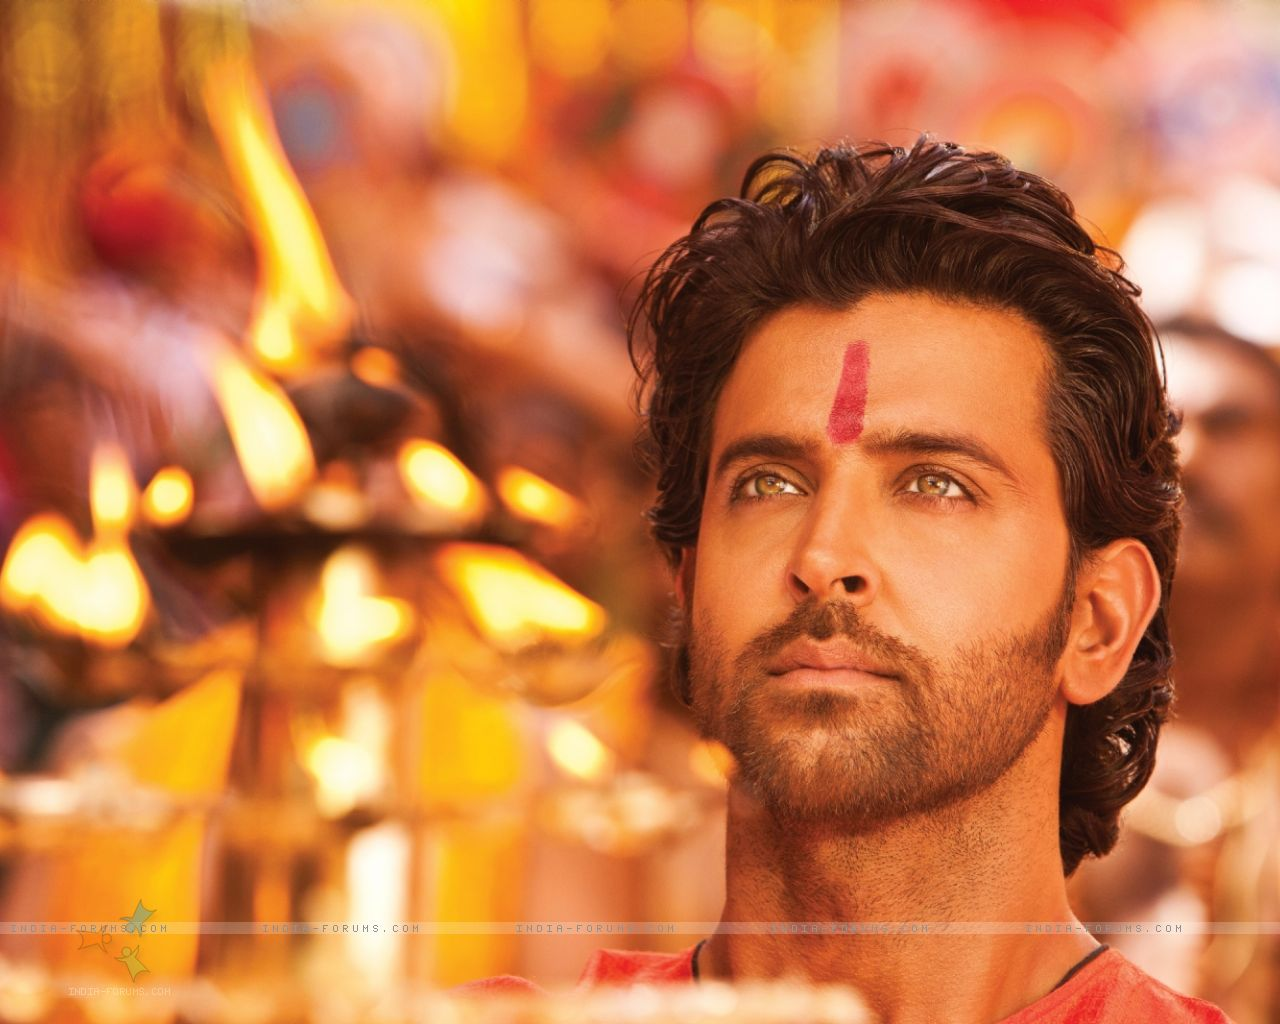 http://2.bp.blogspot.com/-tdCKQjc3Cj8/TwCngc-nxMI/AAAAAAAAEw4/-g7wMZ8ZVuI/s1600/156713-hrithik-roshan-in-the-movie-agneepath-2012-.jpg